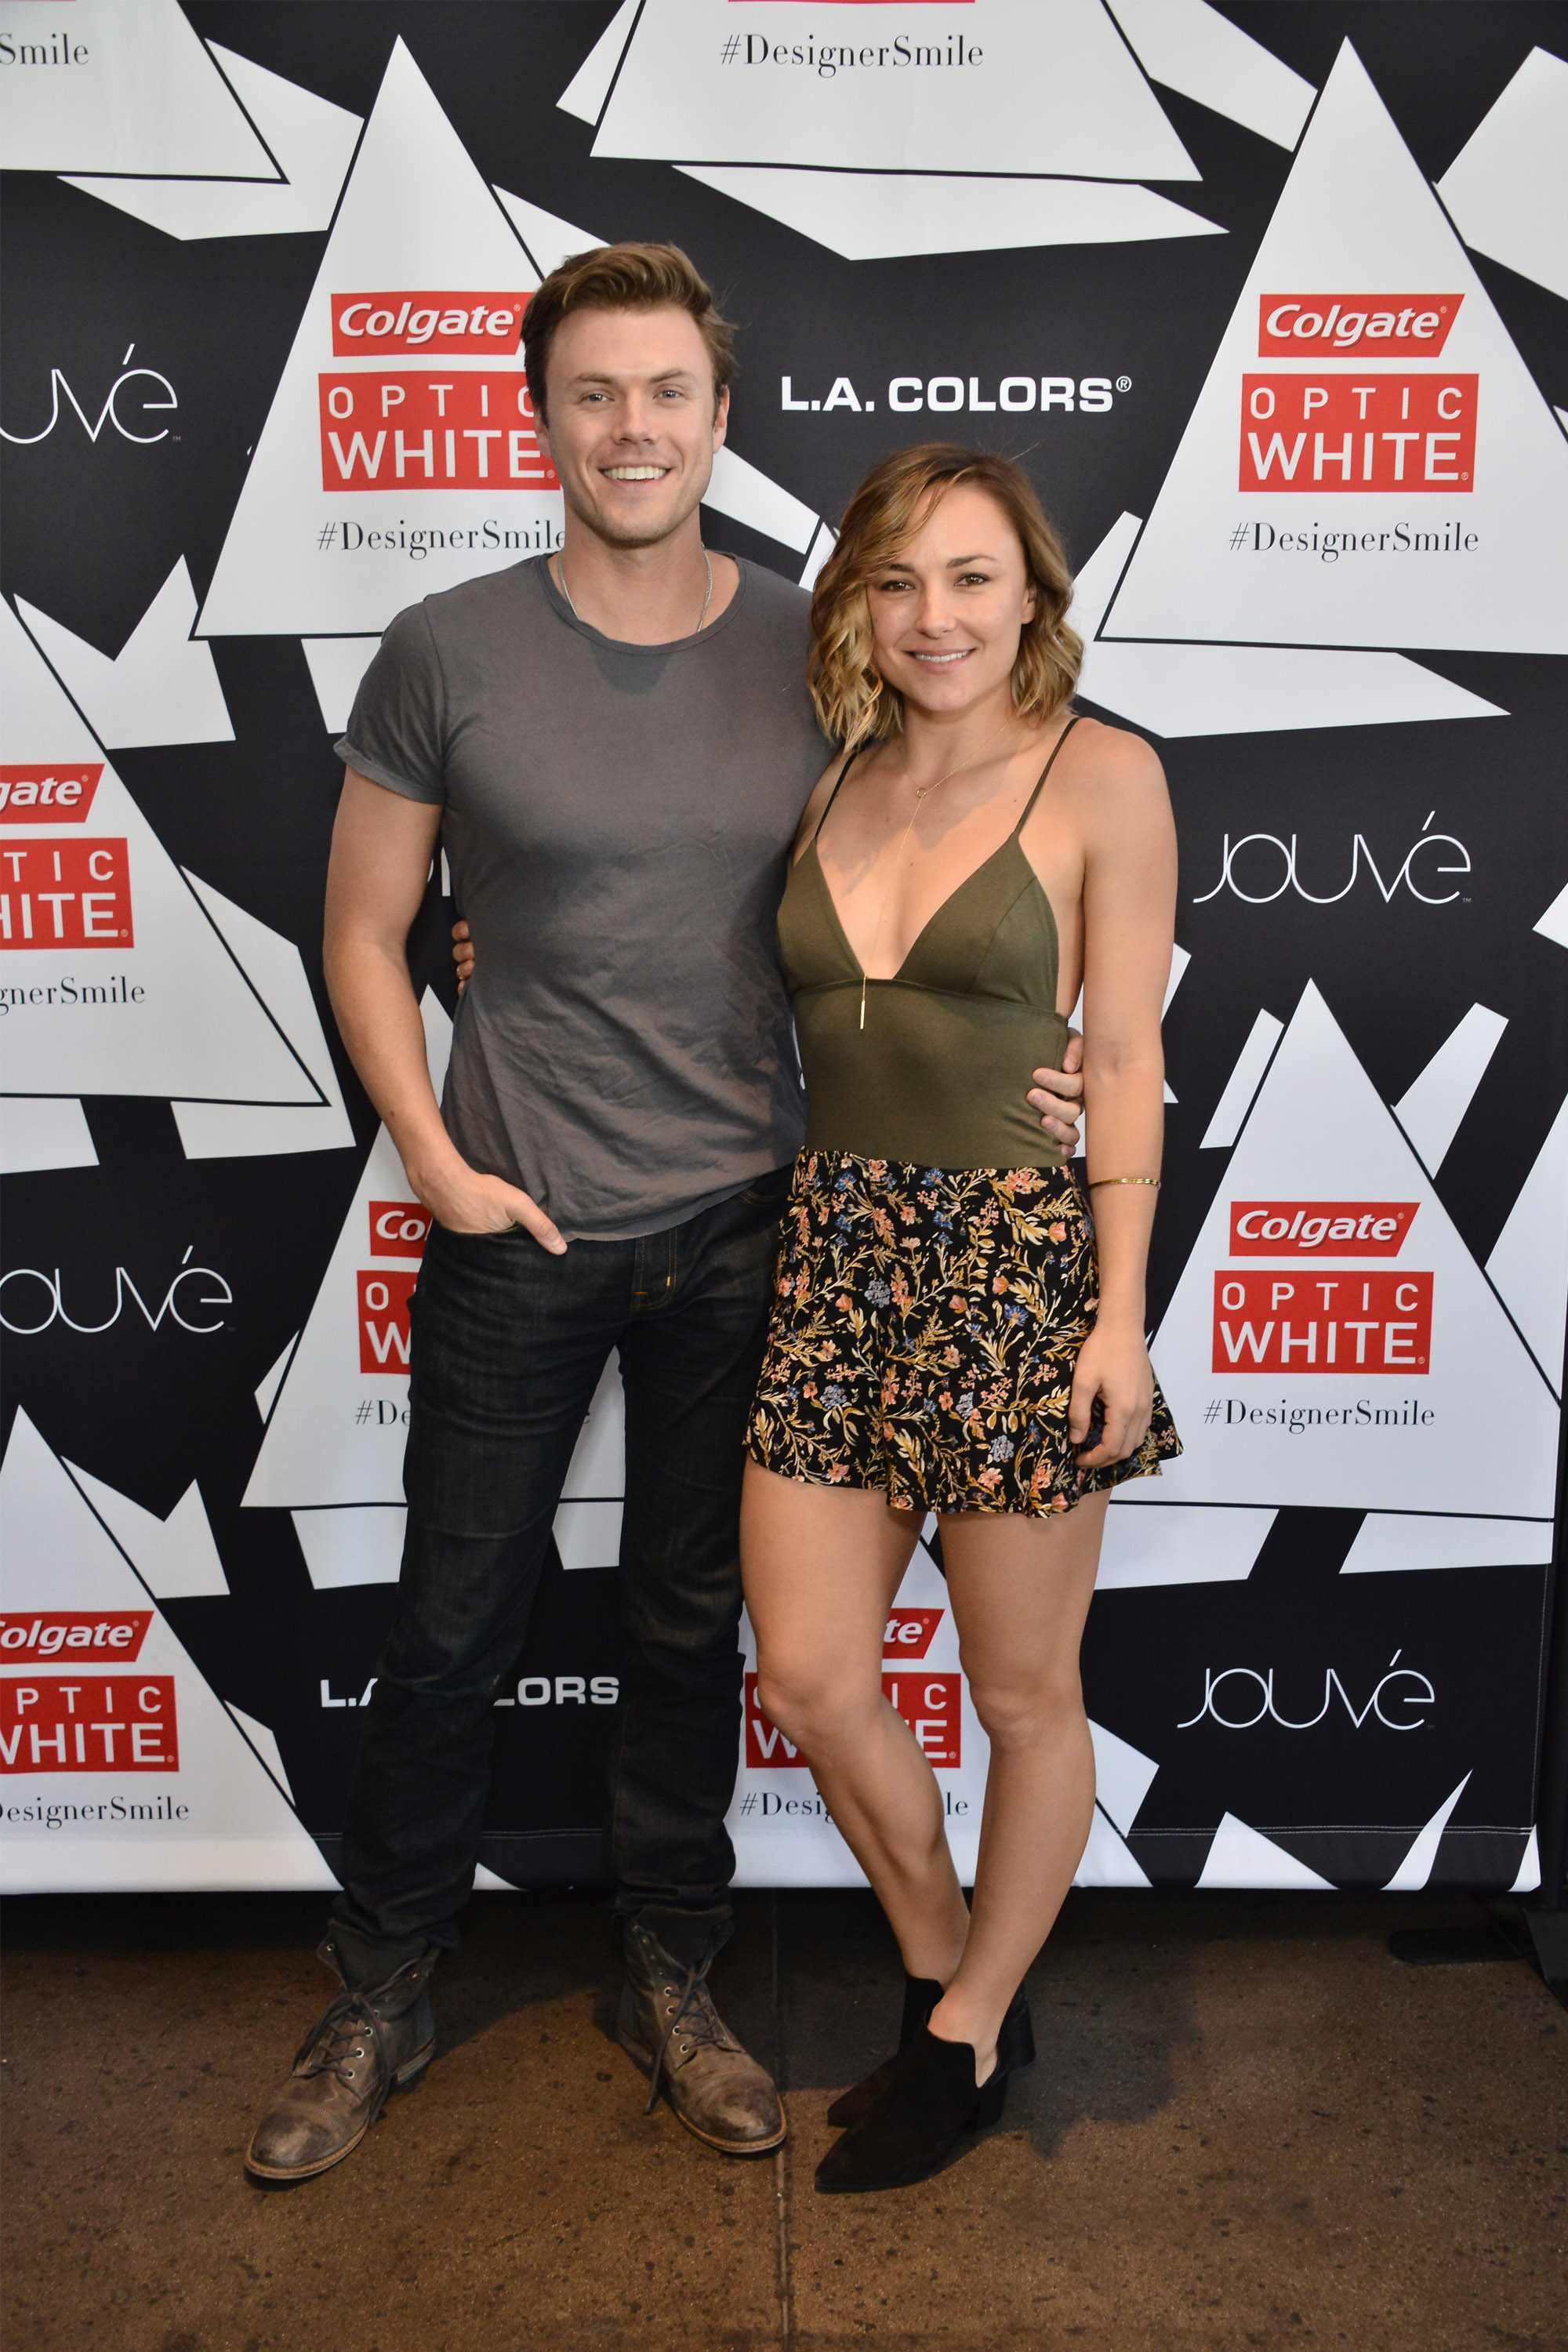 Blake Cooper Griffin and Briana Evigan attend the Colgate Optic White Beauty Bar Ð Day 1 at Hudson Loft on February 13, 2016, in Los Angeles, California.